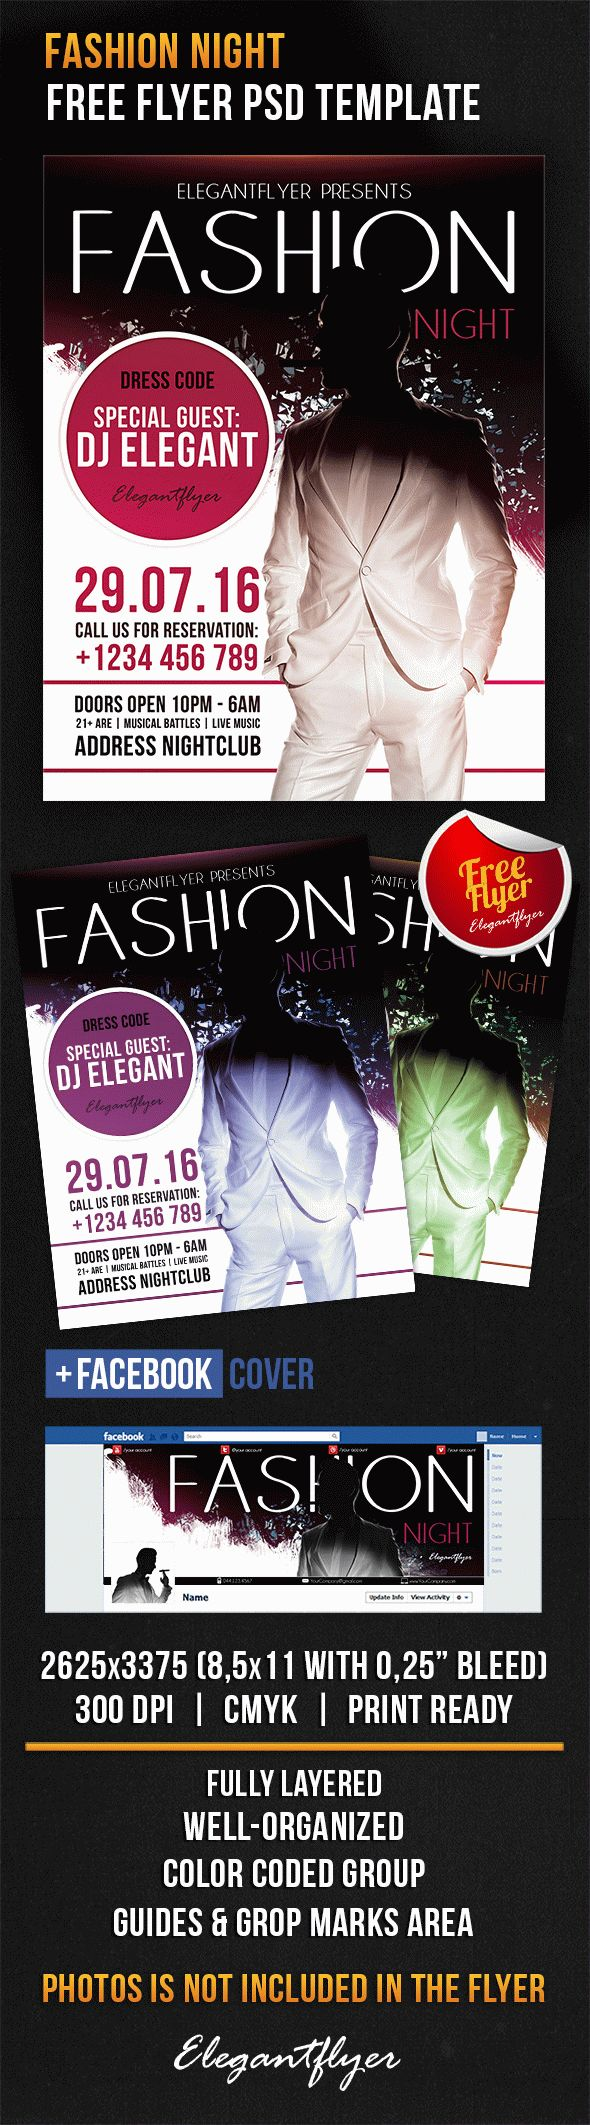 Fashion Night – Free Flyer PSD Template + Facebook Cover